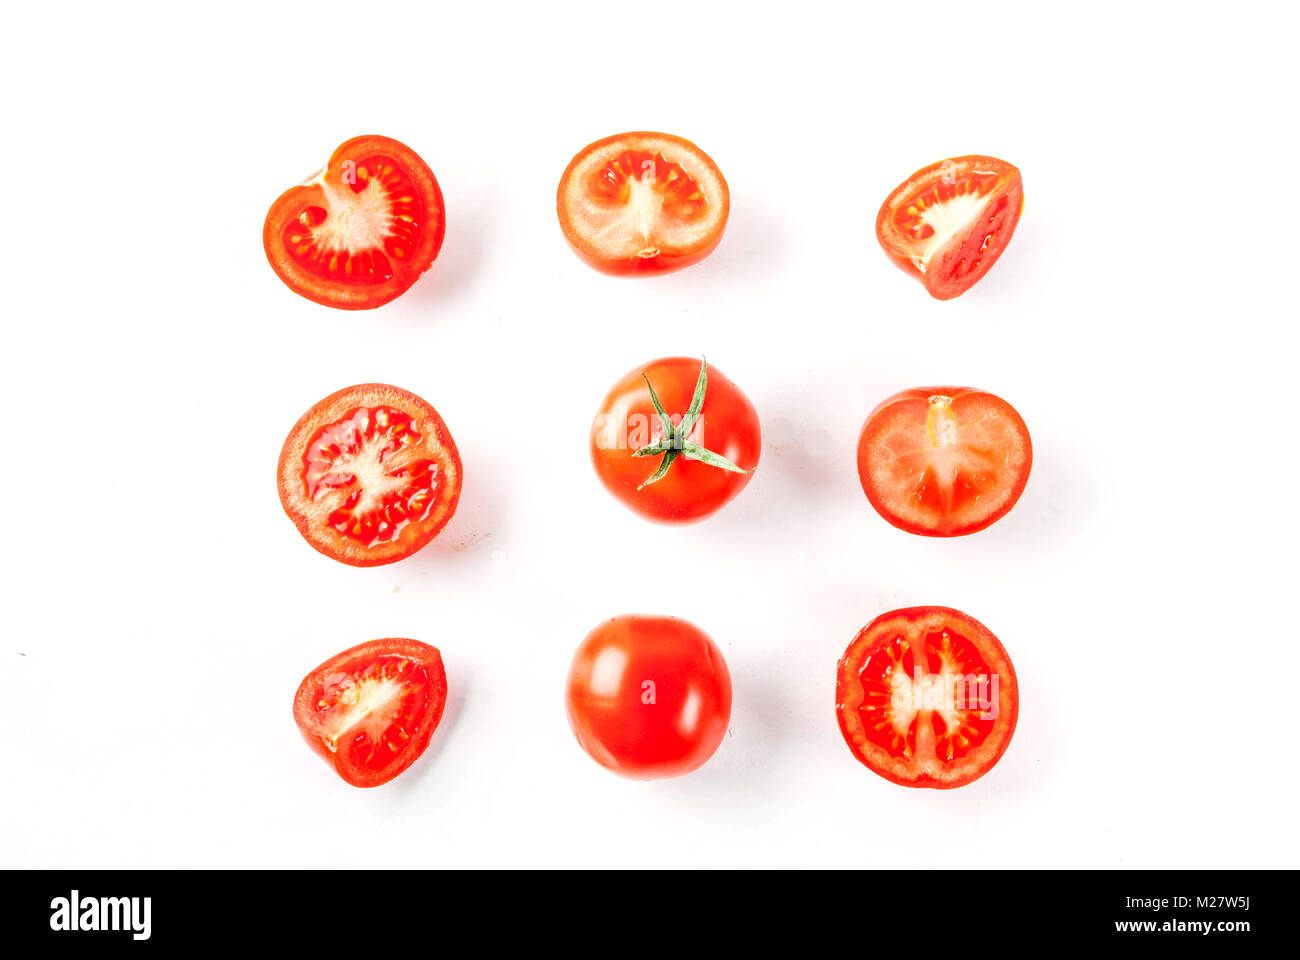 Cartoon Sliced Tomato Stock Photos Prune Tomatoes Diagram Of Plant Fresh Vegetables Raw Whole And Cut On White Background Isolation Copy Space